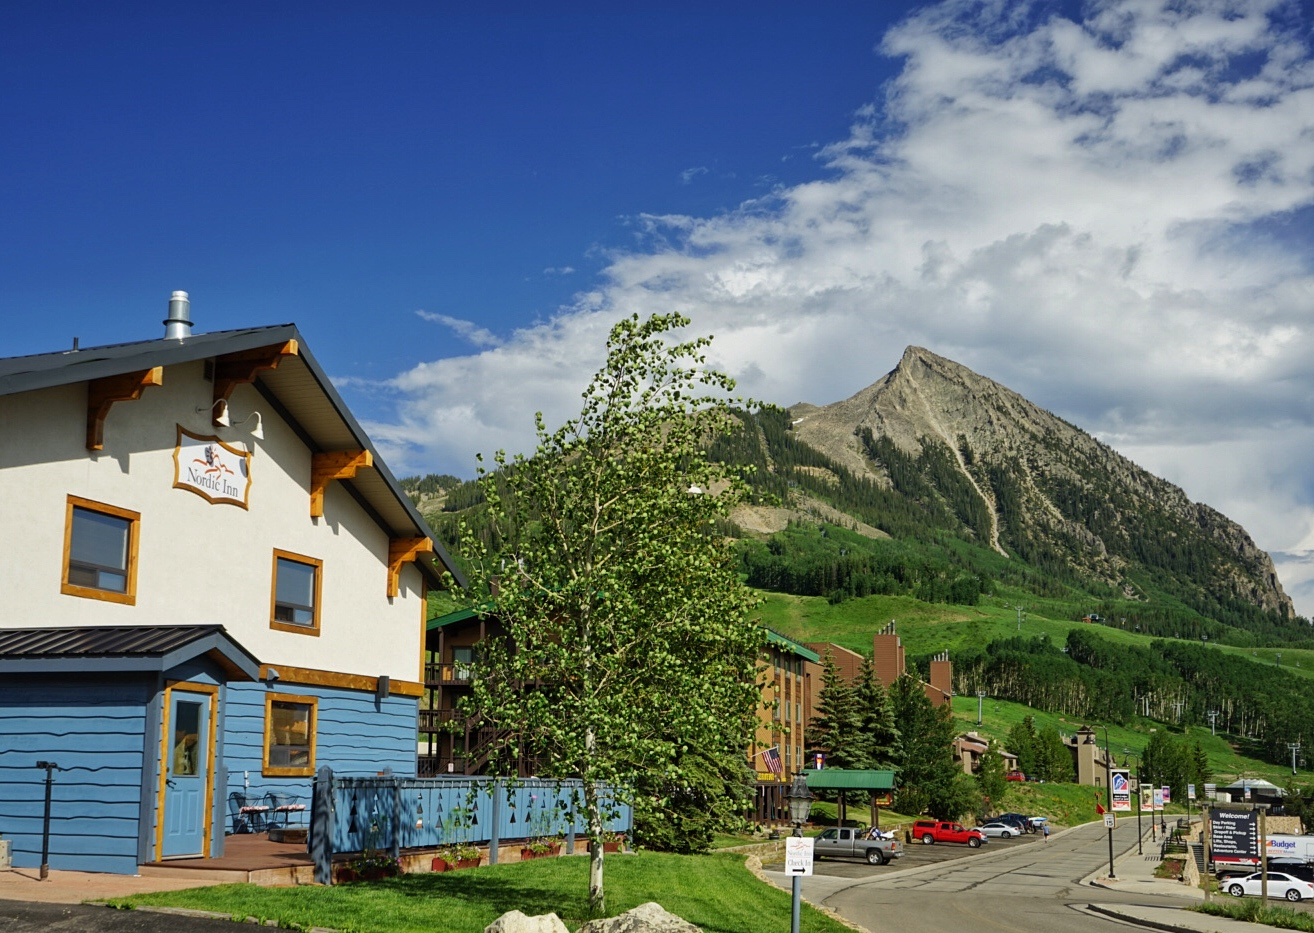 Nordic Inn Mount Crested Butte